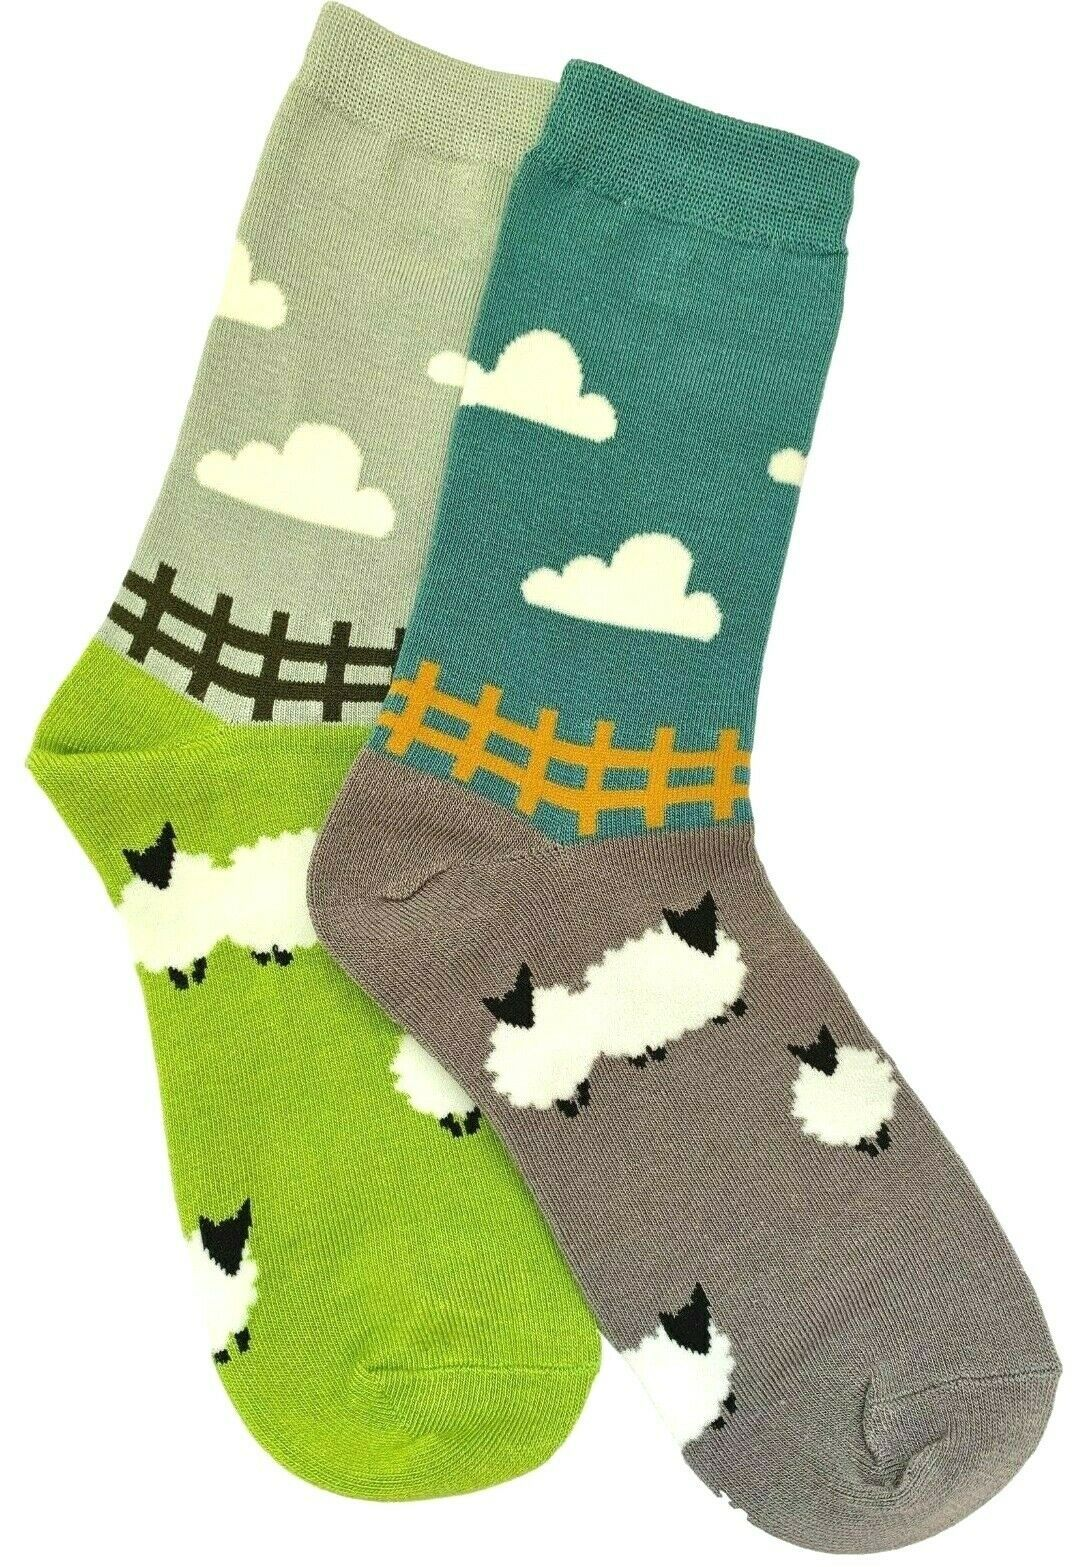 7026a2c9cc539 Sheep Socks 2 Pair Pack Ladies Teal Blue Lime Green Grey Bamboo Cotton Blend